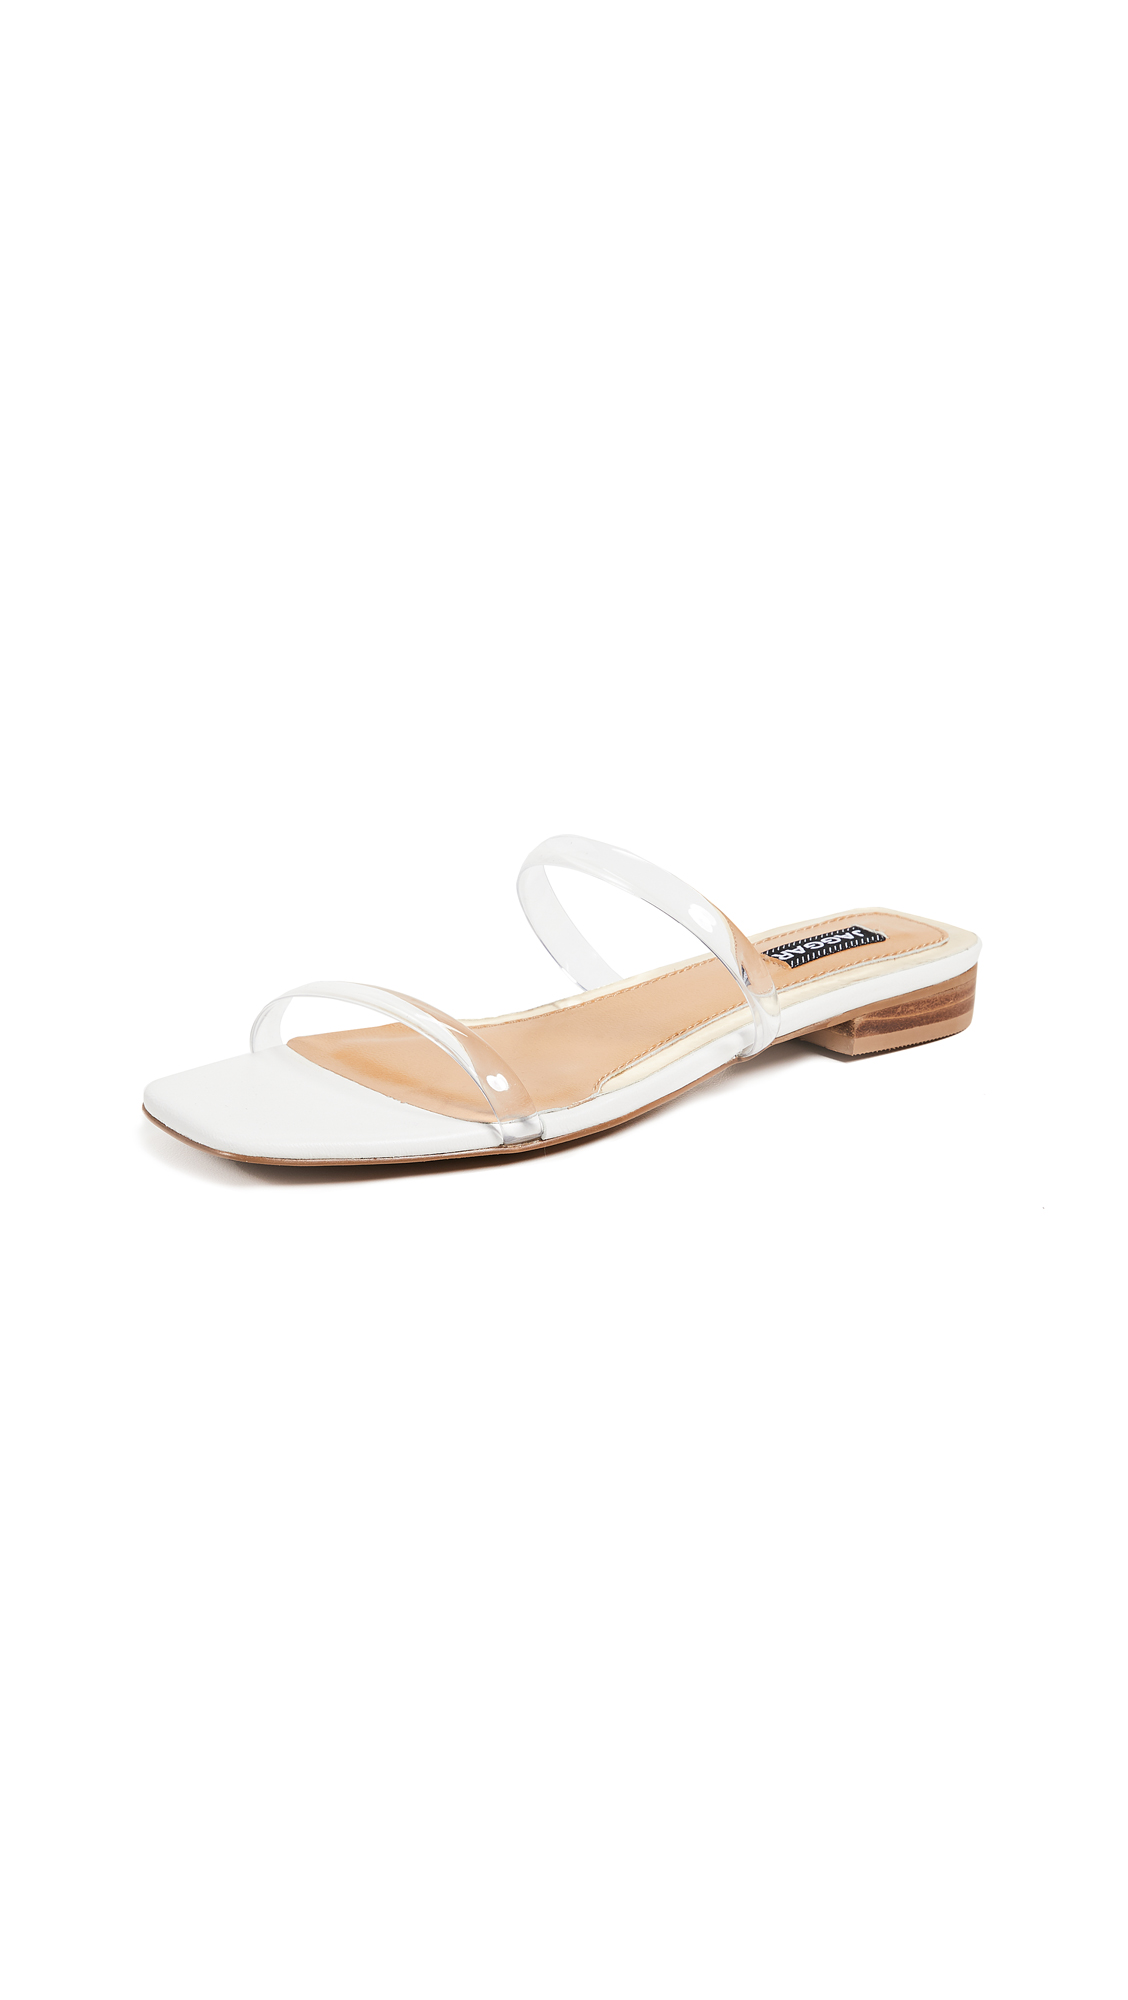 JAGGAR Double Strap Sandals - Clear